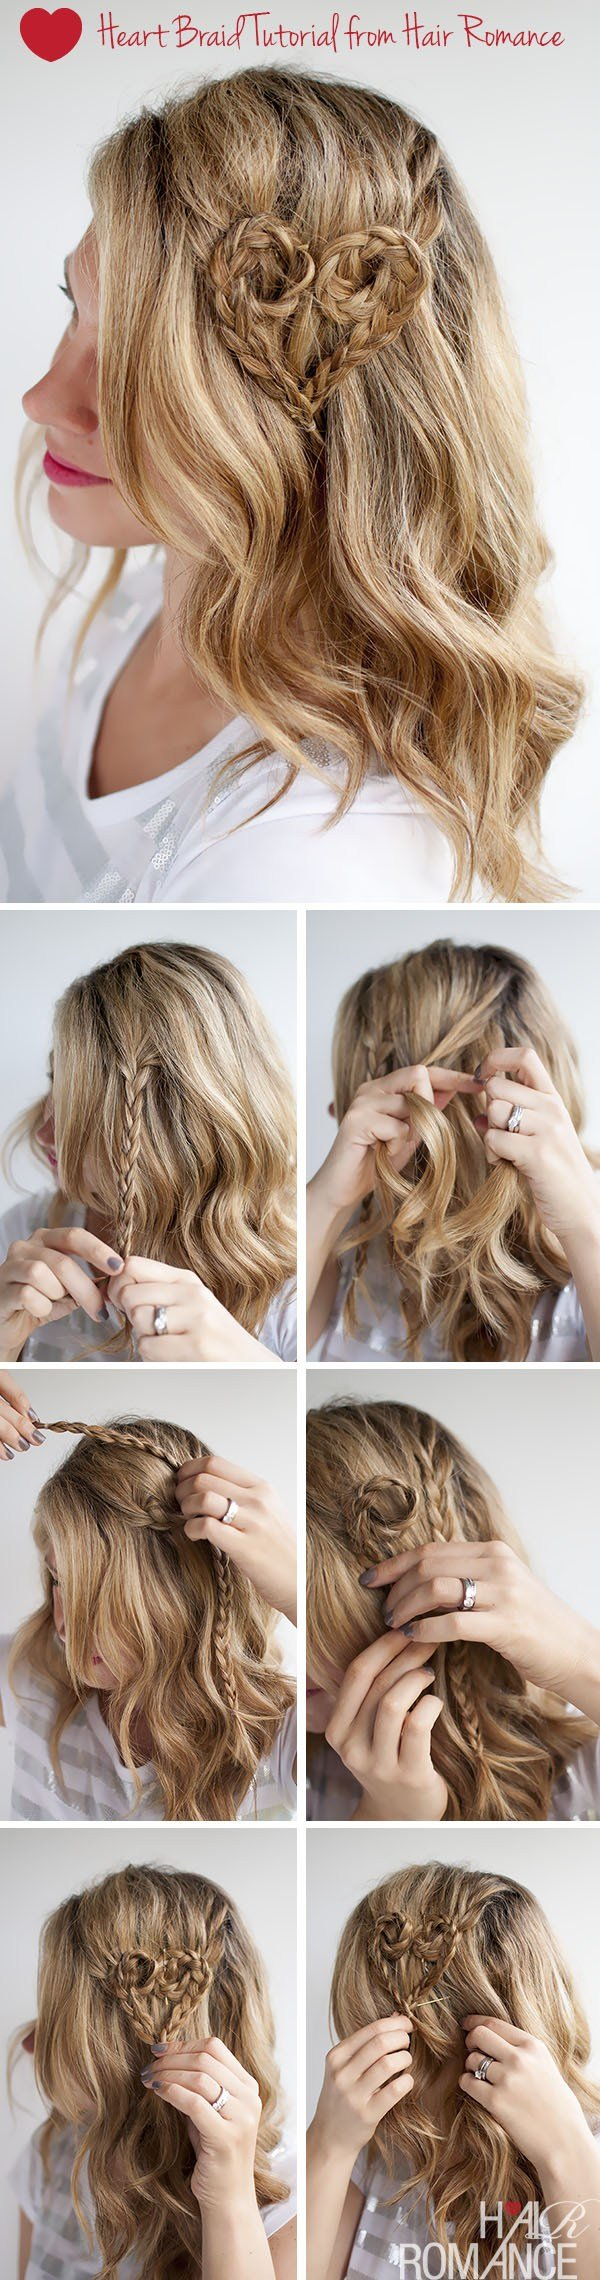 The Best Valentine S Day Hairstyle Tutorial Heart Braid Hairstyle Pictures